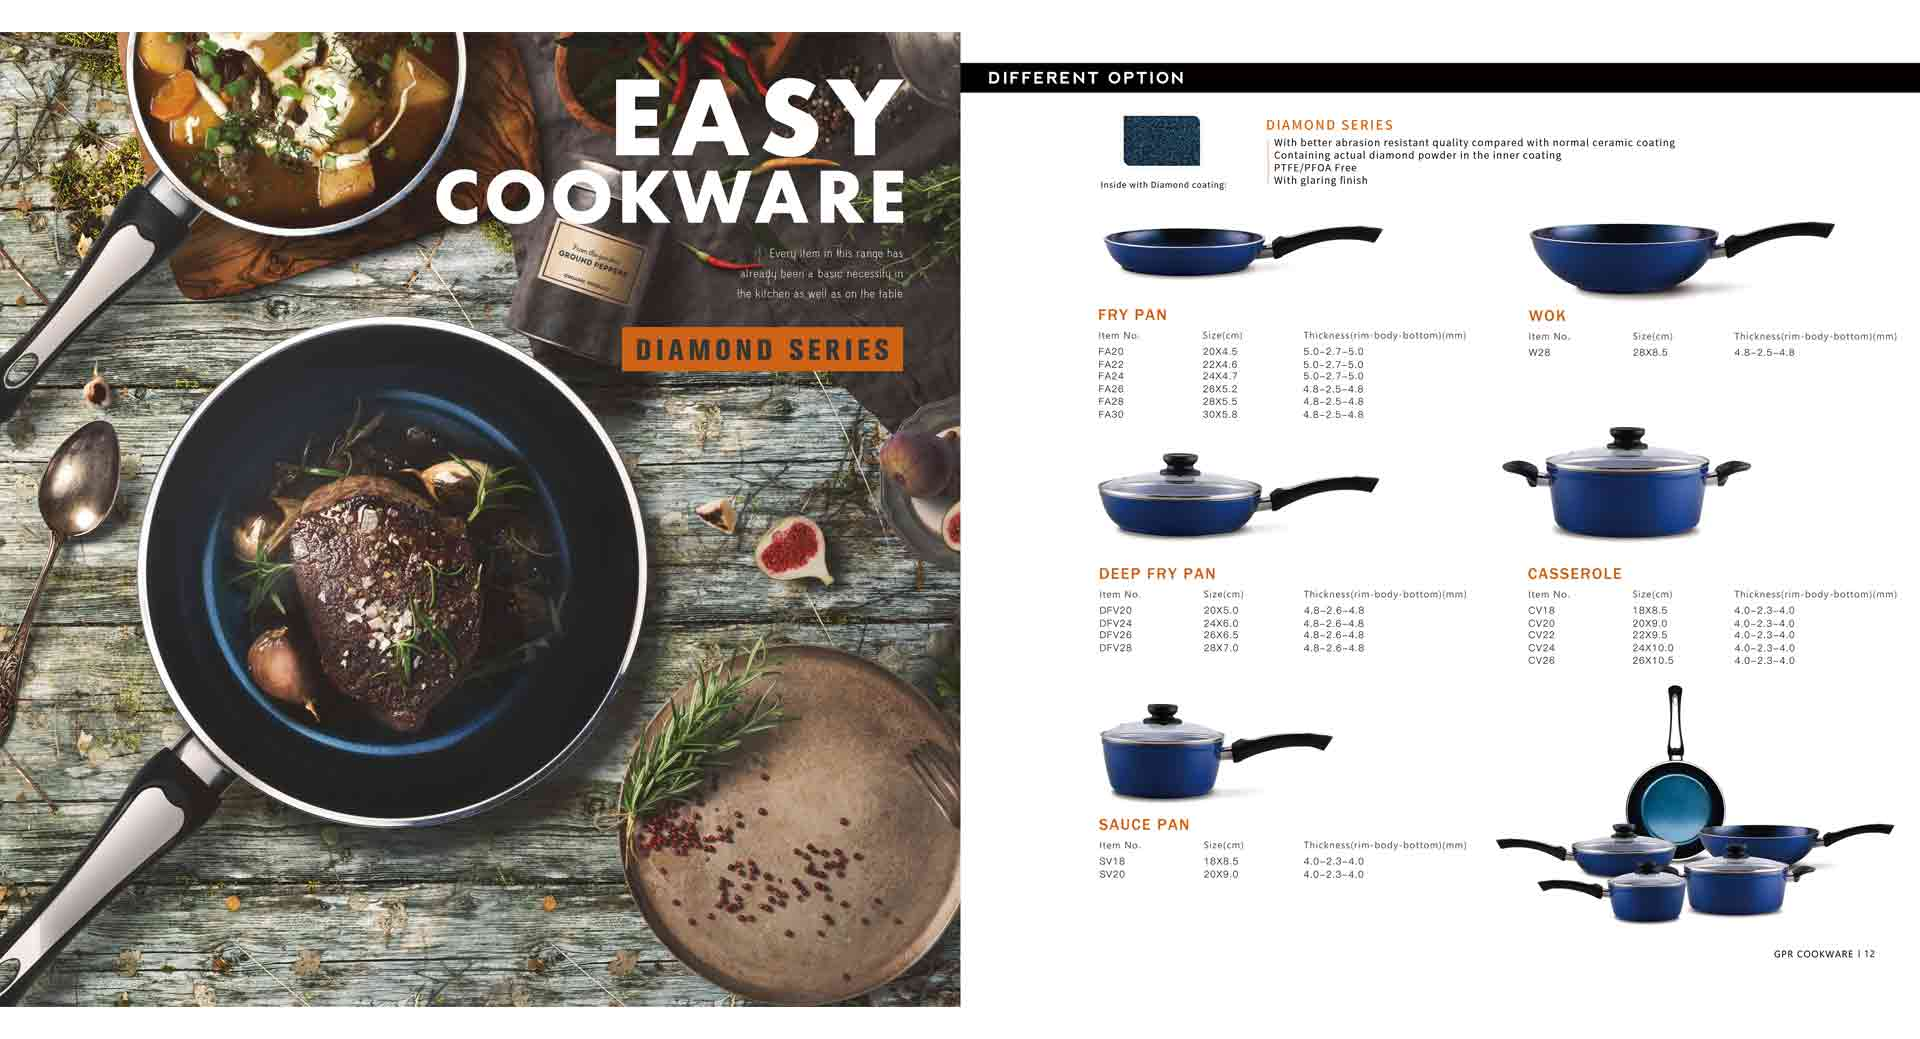 Diamond Series Cookware Set